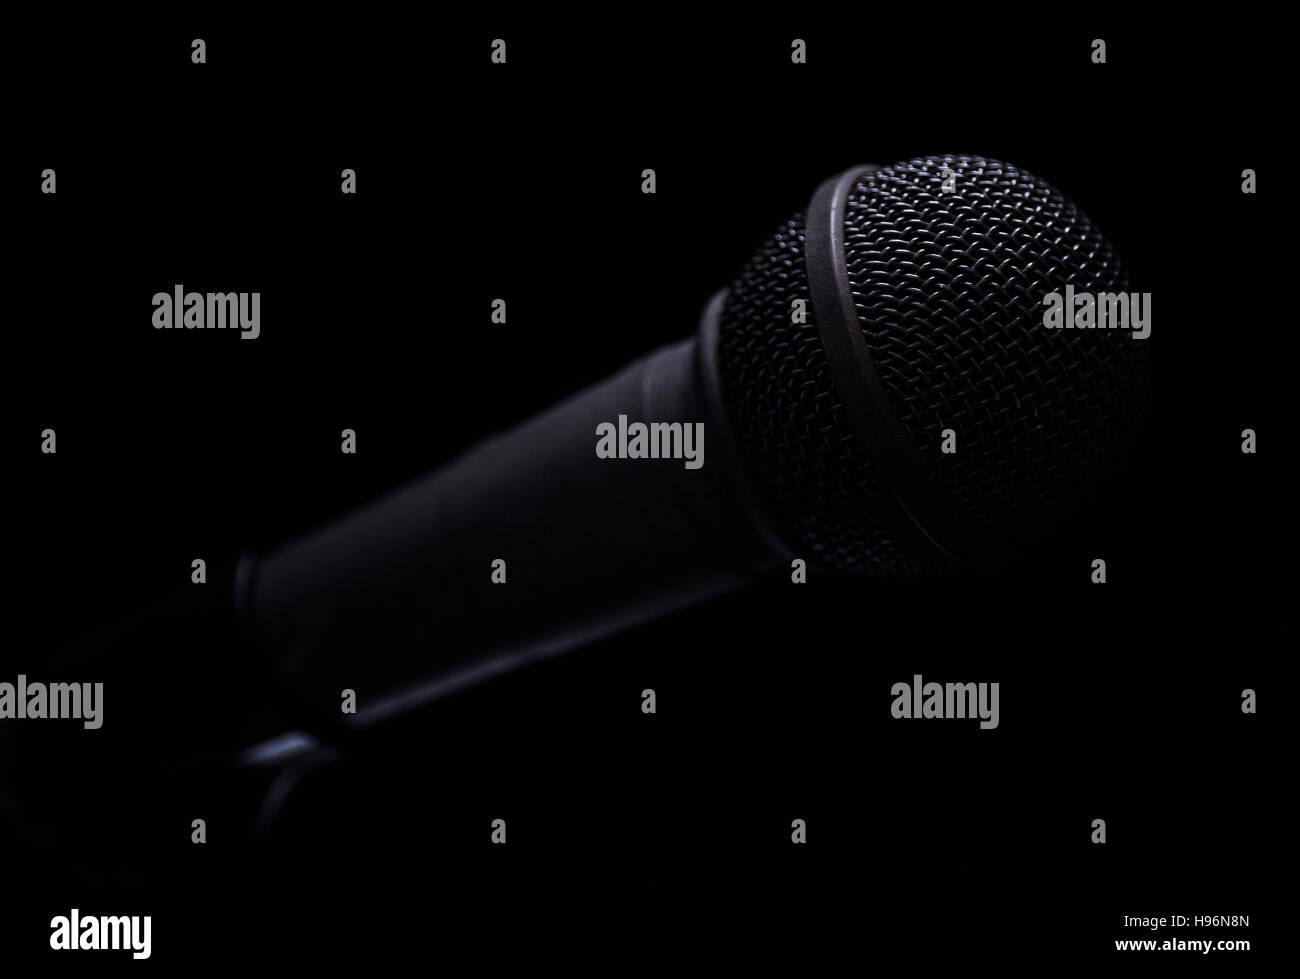 Retro styled black microphone - Stock Image